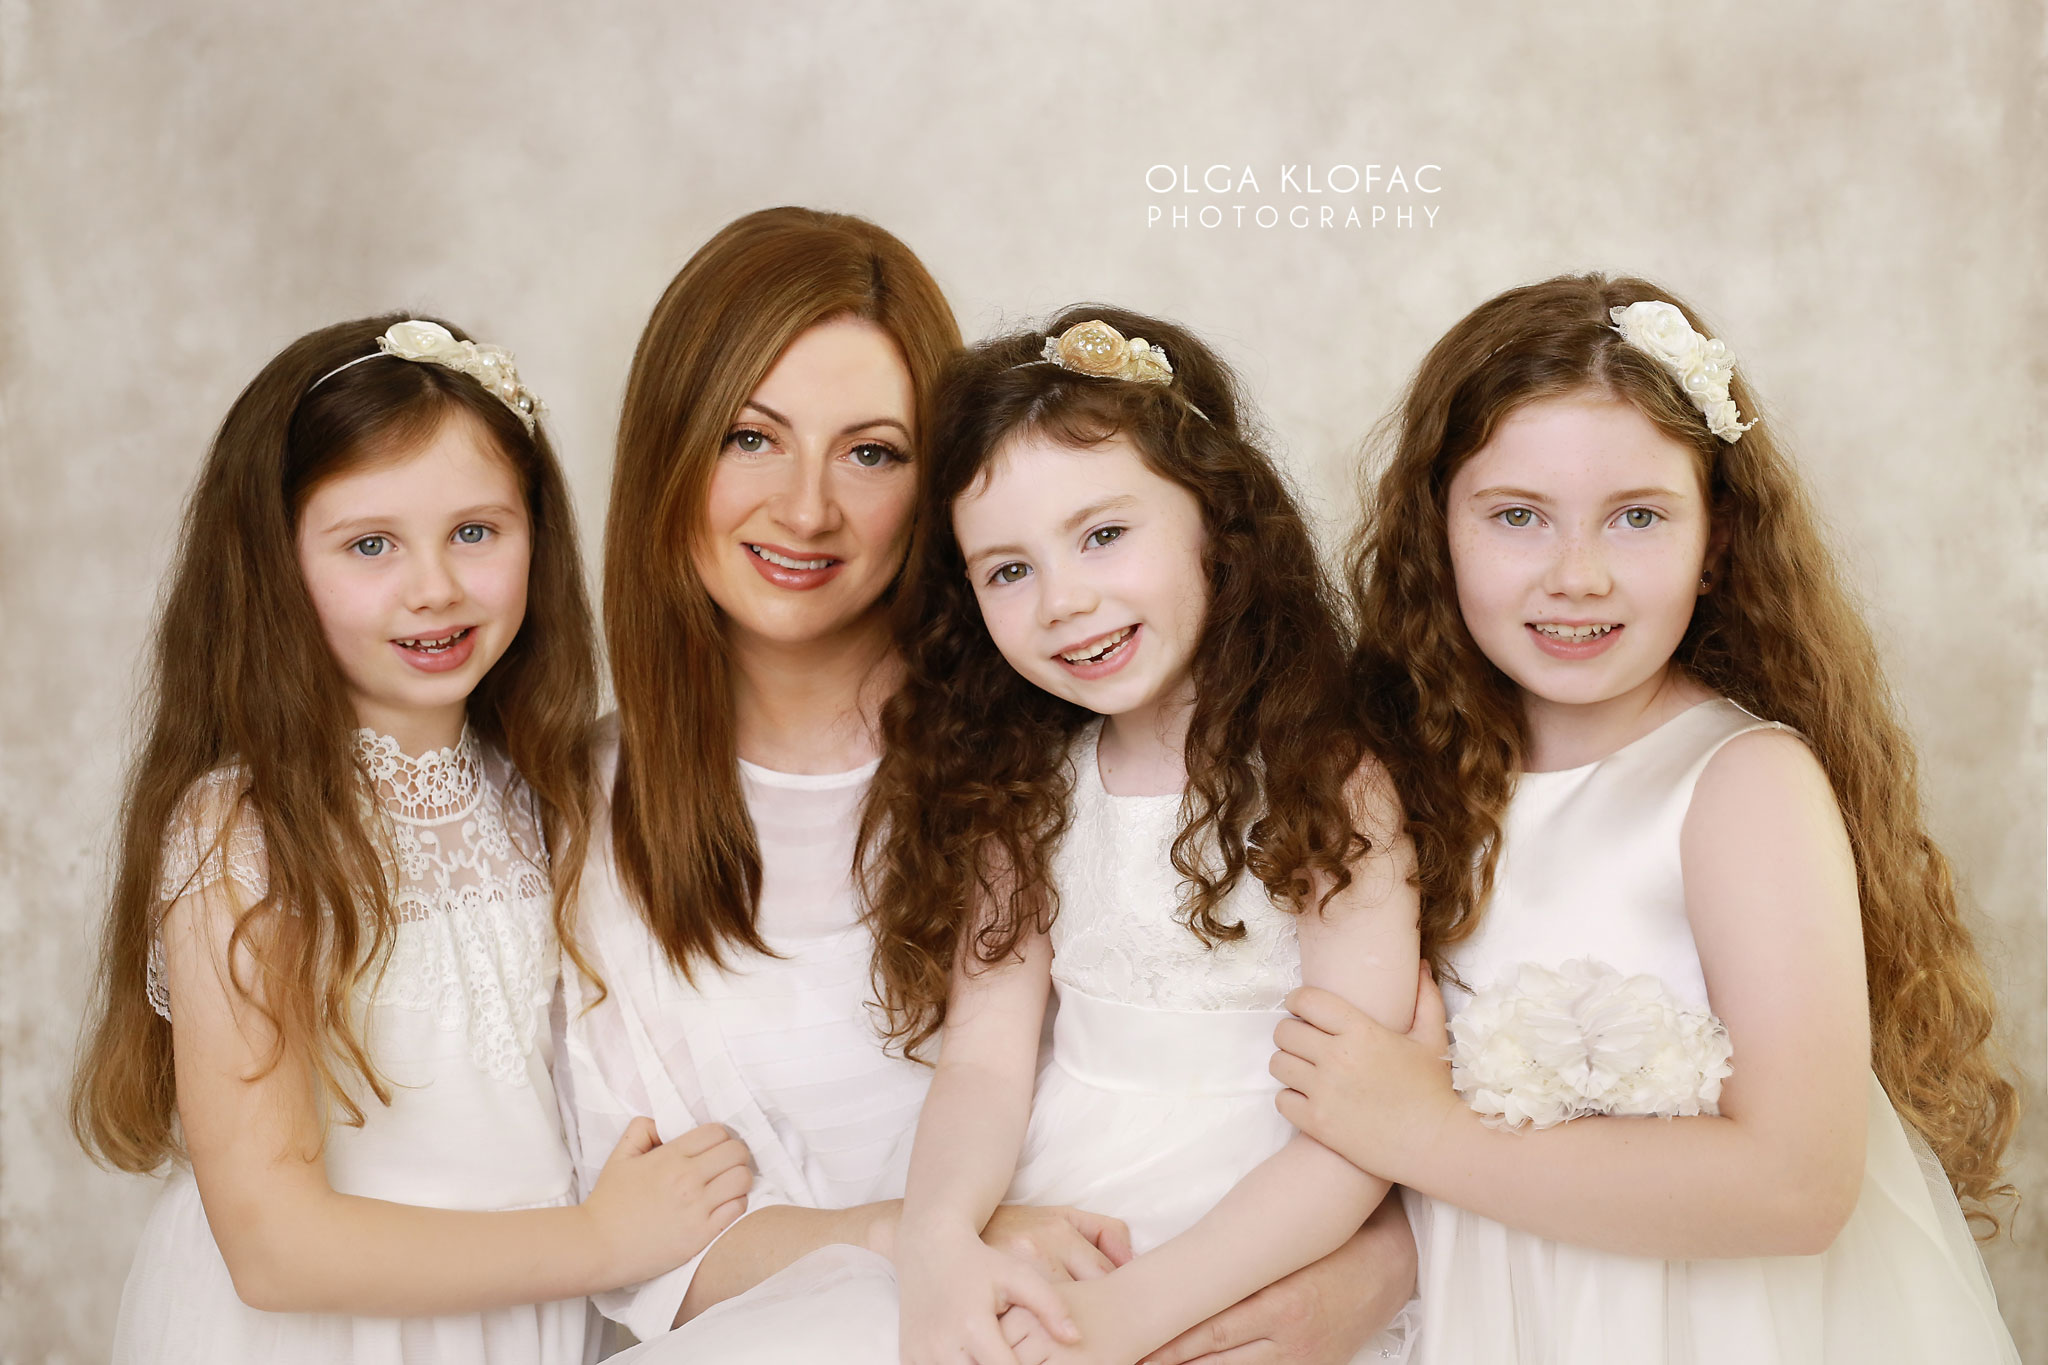 family photo by olga klofac photography, portrait photographer family kids photographer Mayo Sligo Roscommon Galway Leitrim